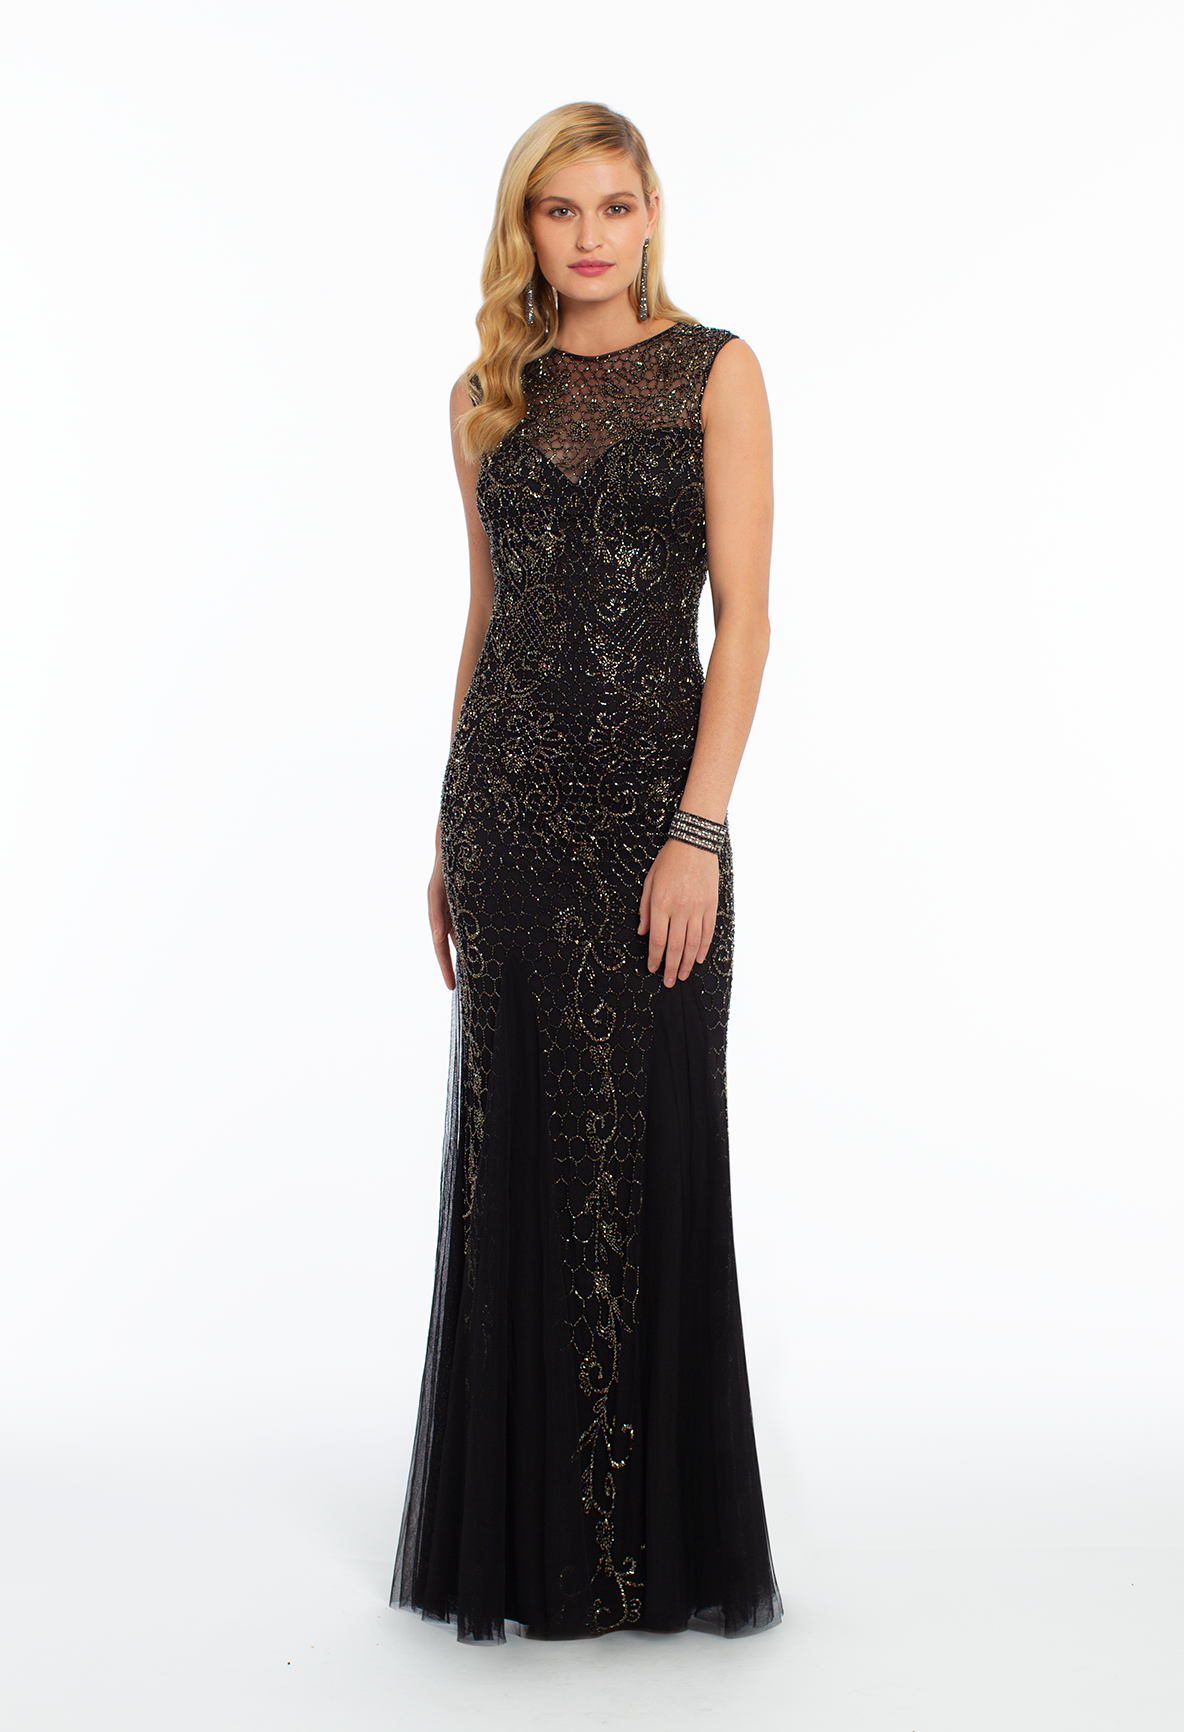 Sleeveless lace illusion microbeaded dress in new arrivals